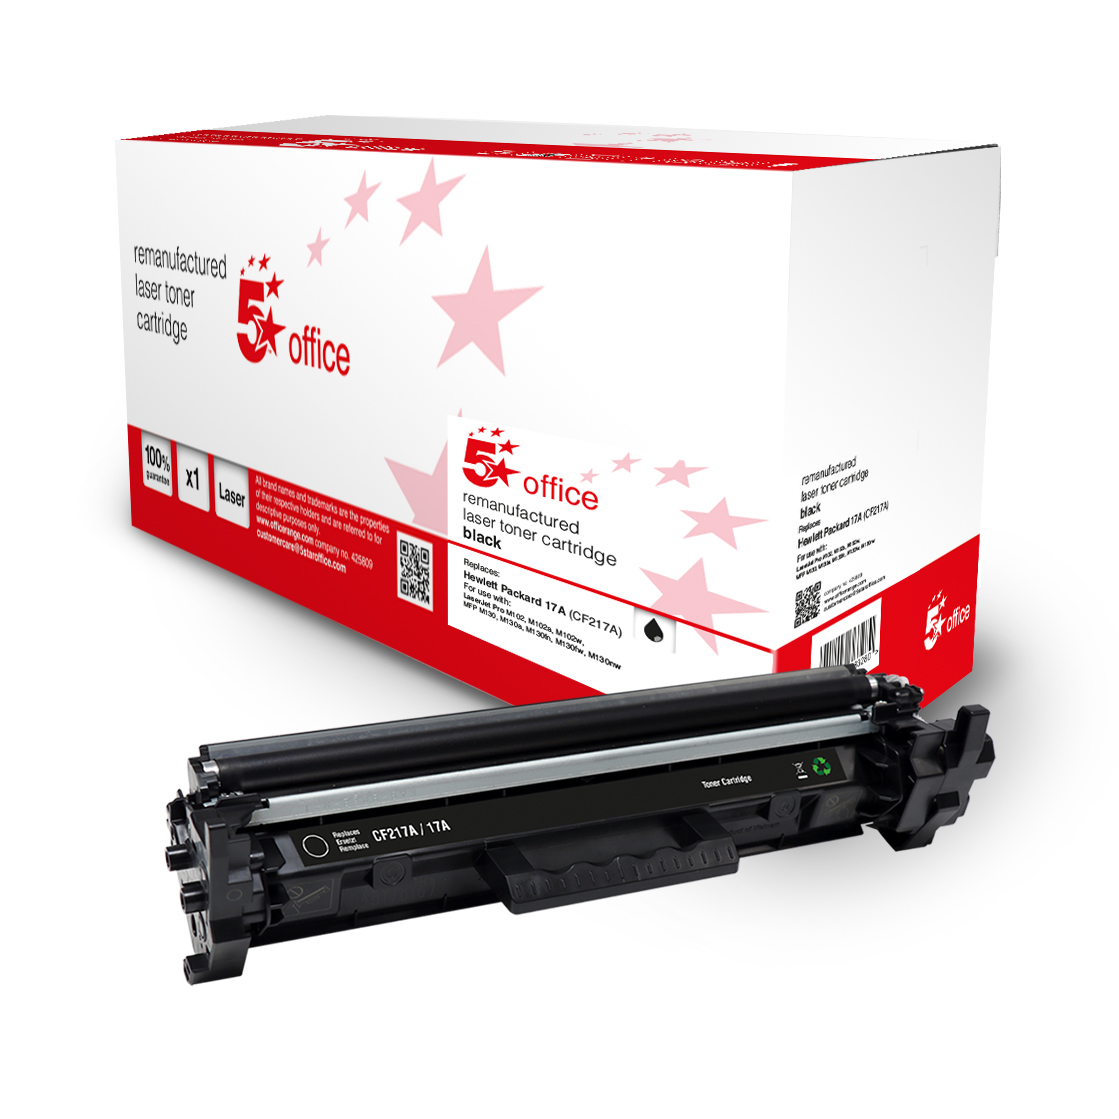 5 Star Office Remanufactured Toner Cartridge Page Life Black 1600pp HP 17A CF217A Alternative